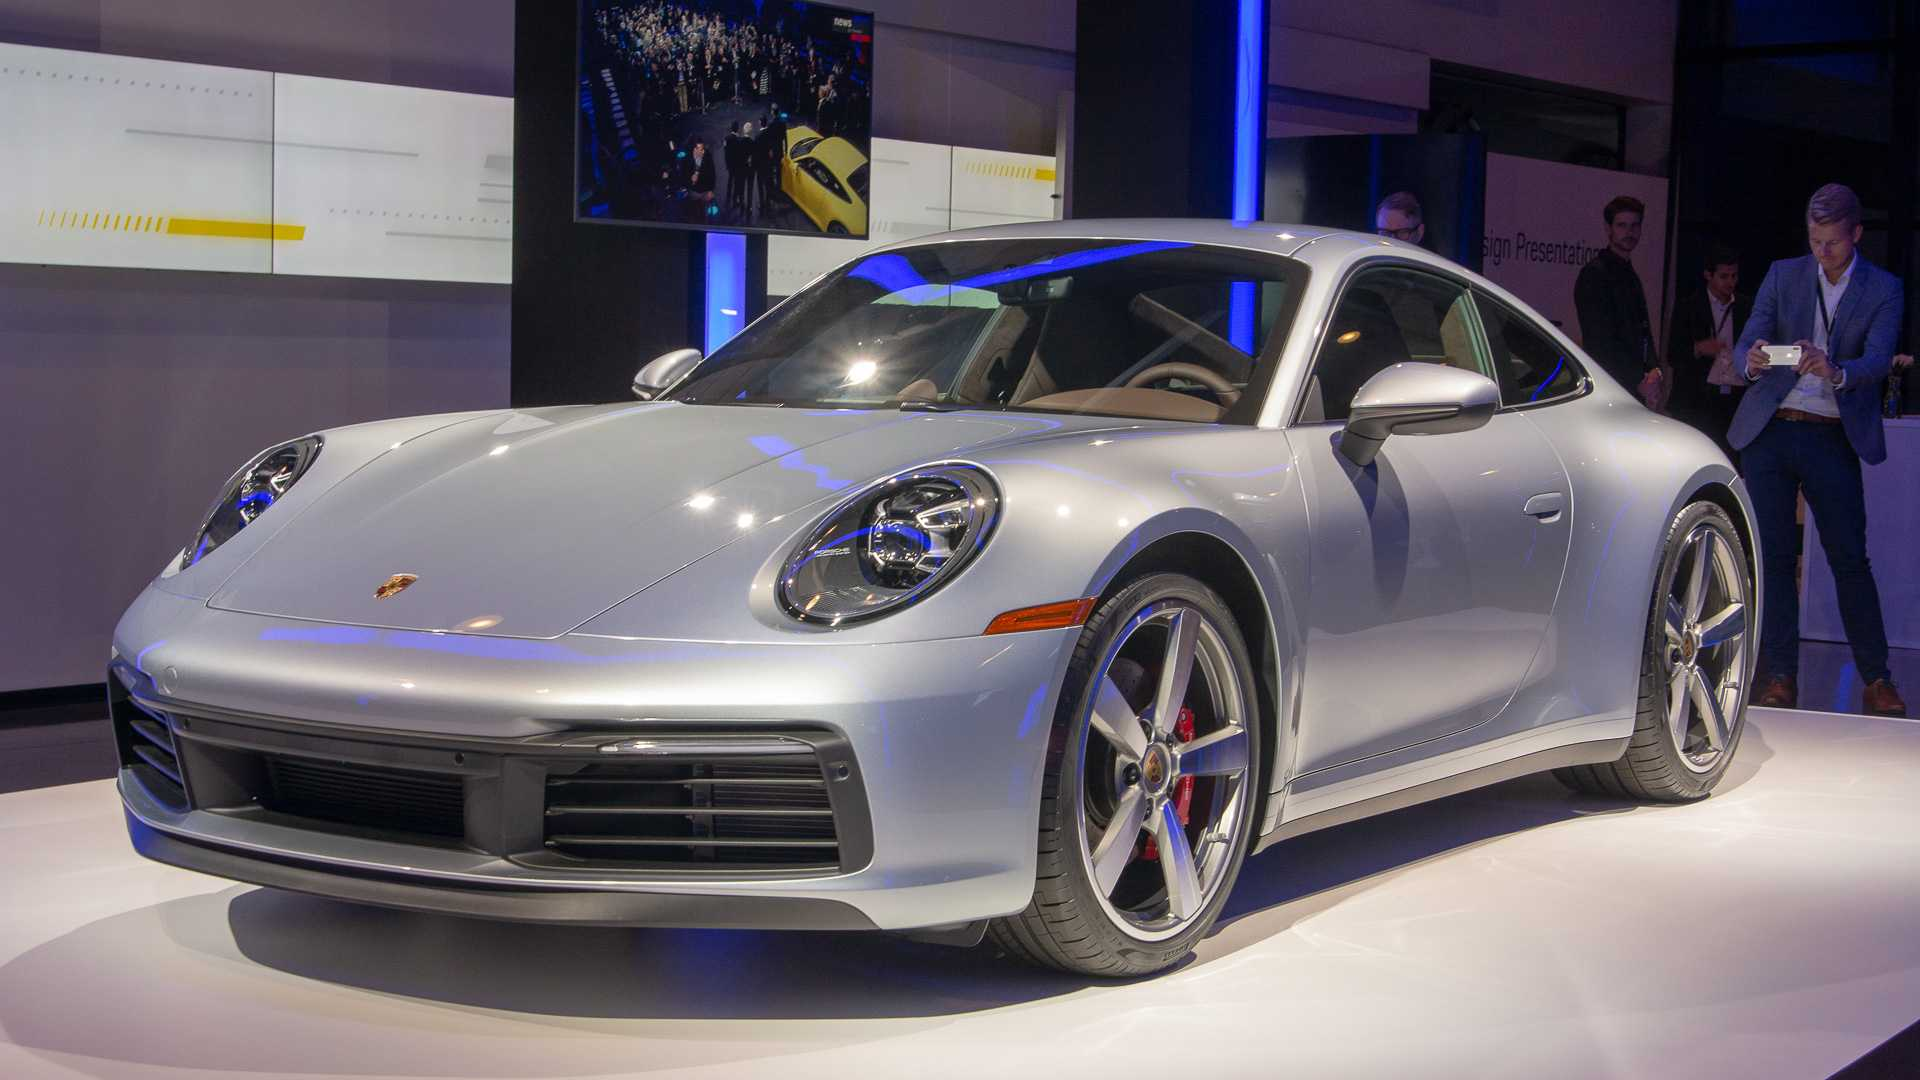 2020 Porsche 911 Carrera S Carrera 4s Debut With 443 Hp